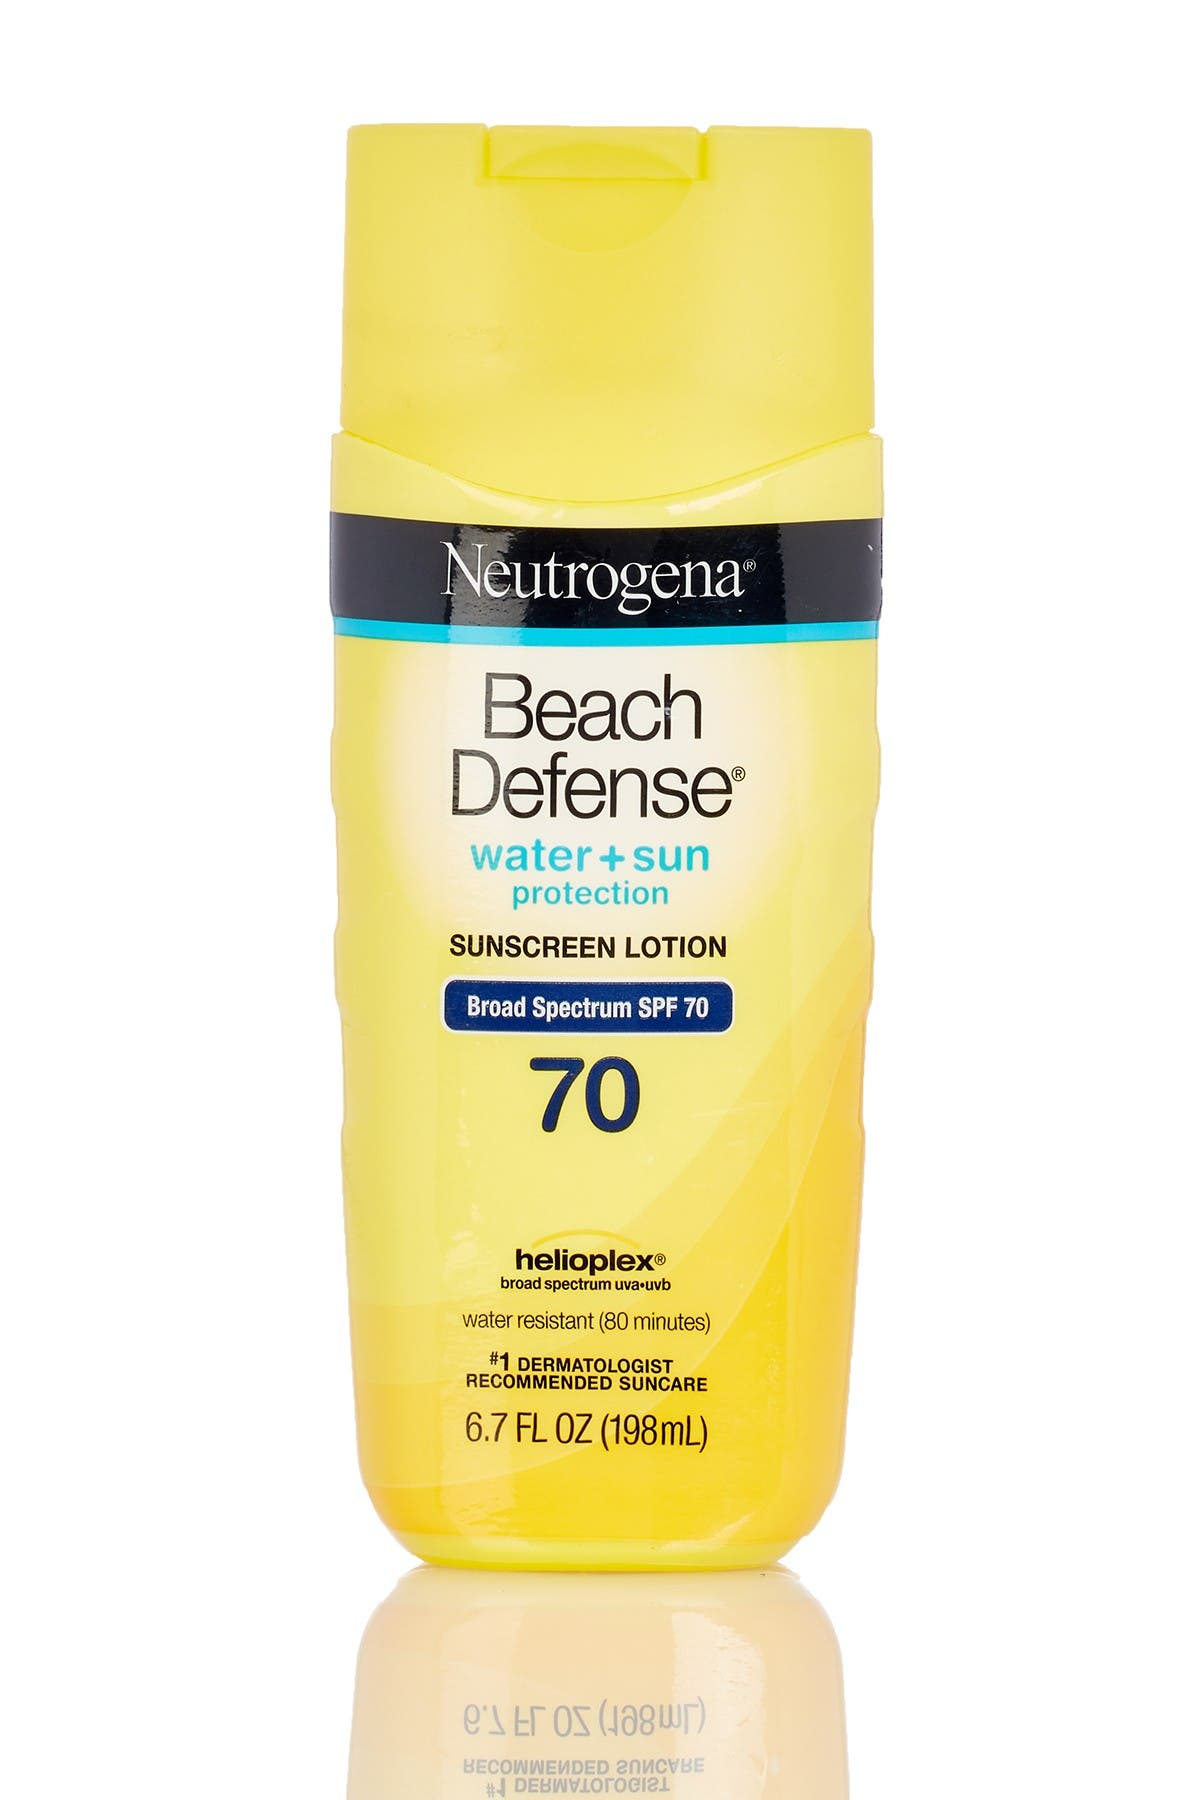 Image of Neutrogena Beach Defense Water + Sun Protection SPF 70 Sunscreen Lotion